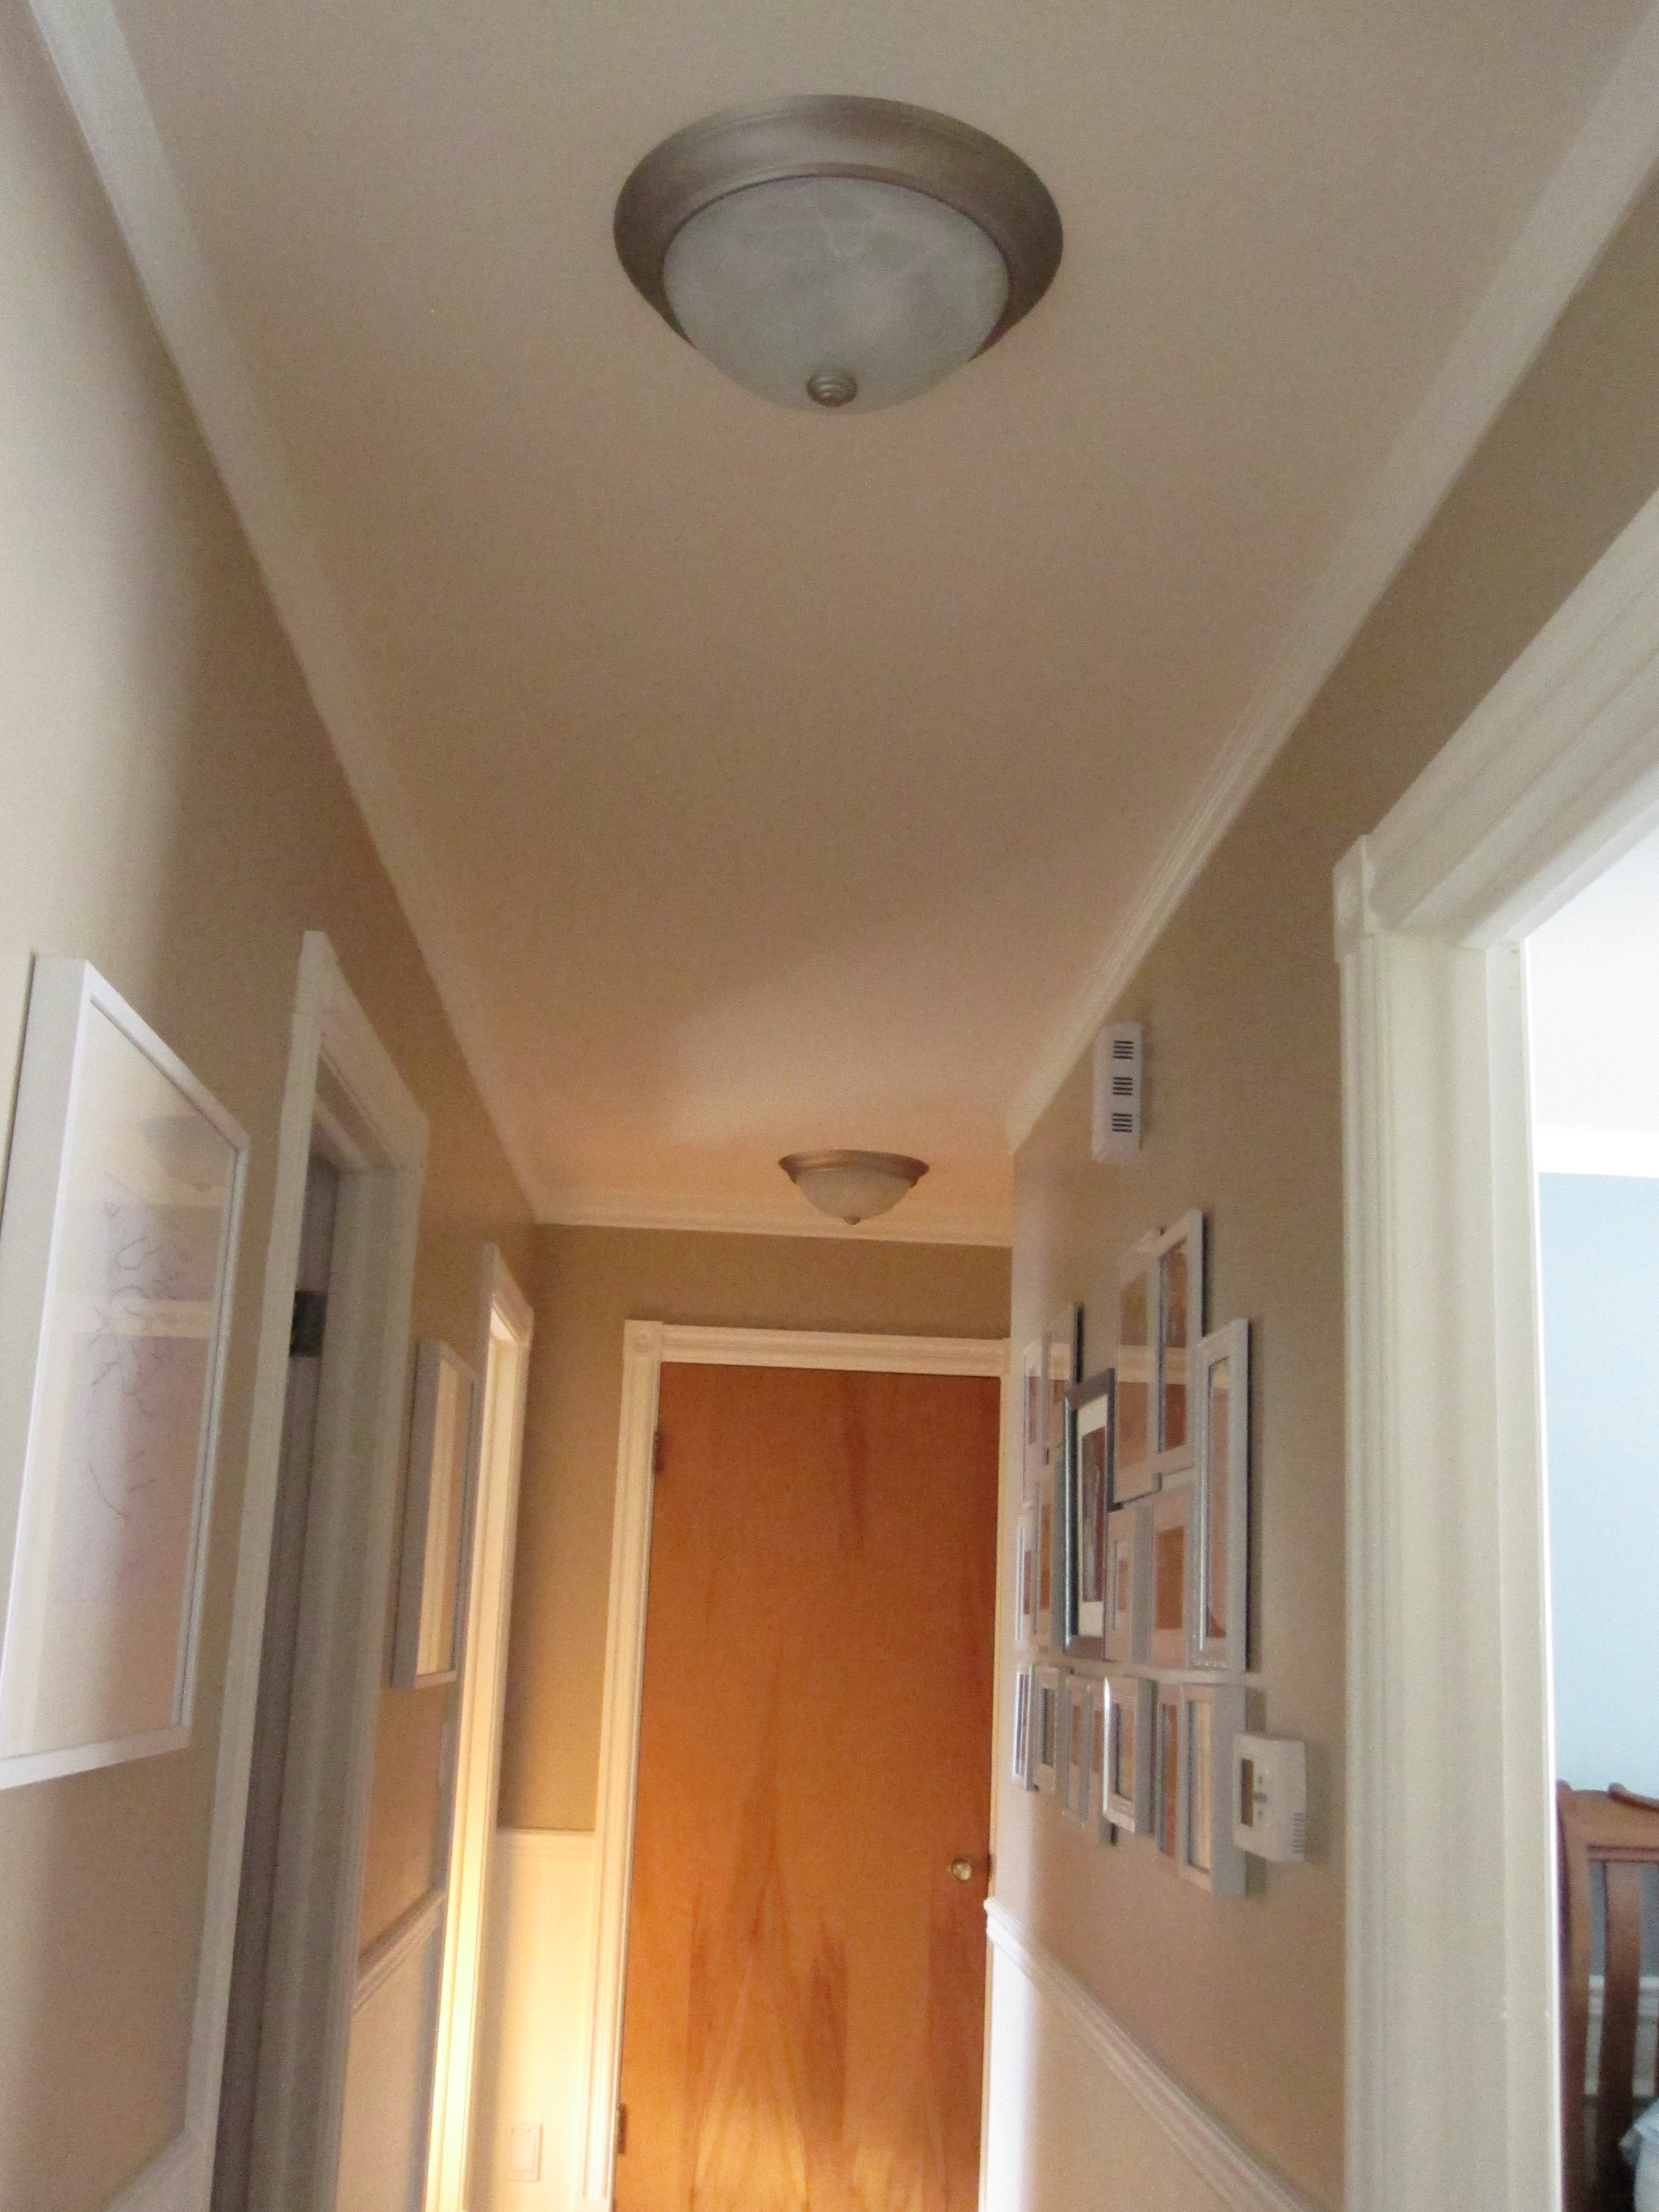 How Much To Replace Ceiling Fan Wanted Imagery